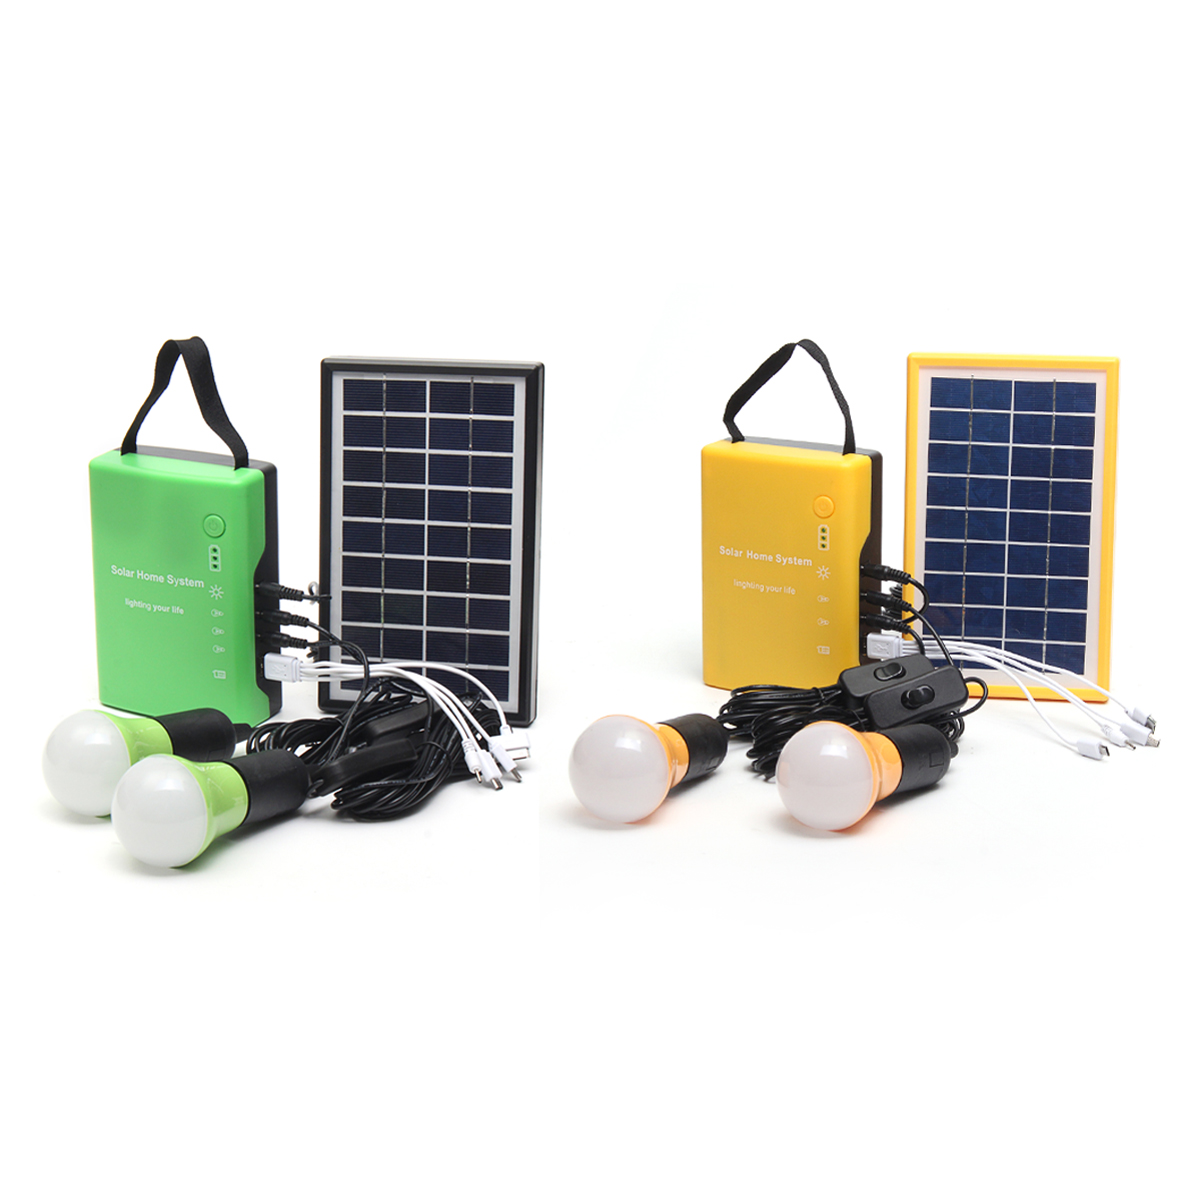 Portable Solar Panel Power Generator LED Light USB Cable Charge Emergency System Kit 4.5Ah/6V batteries Energy for Home Outdoor energy efficient system for solar panel